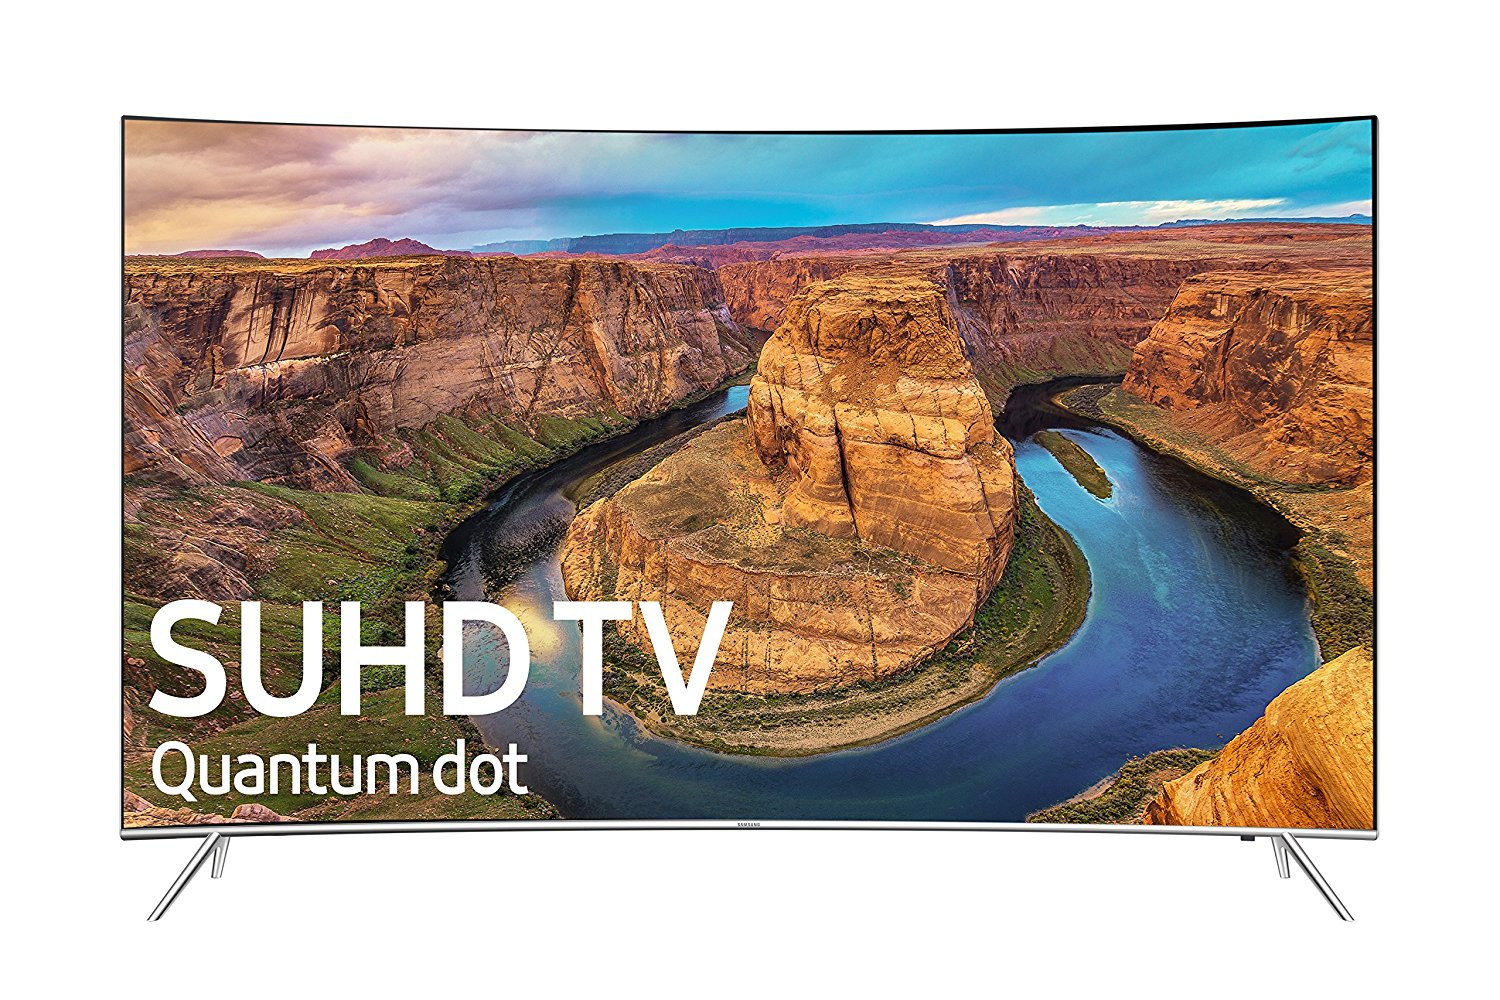 Samsung Curved 49-Inch 4K Ultra HD Smart LED TV (2016 Model) with Built-In Wi-Fi